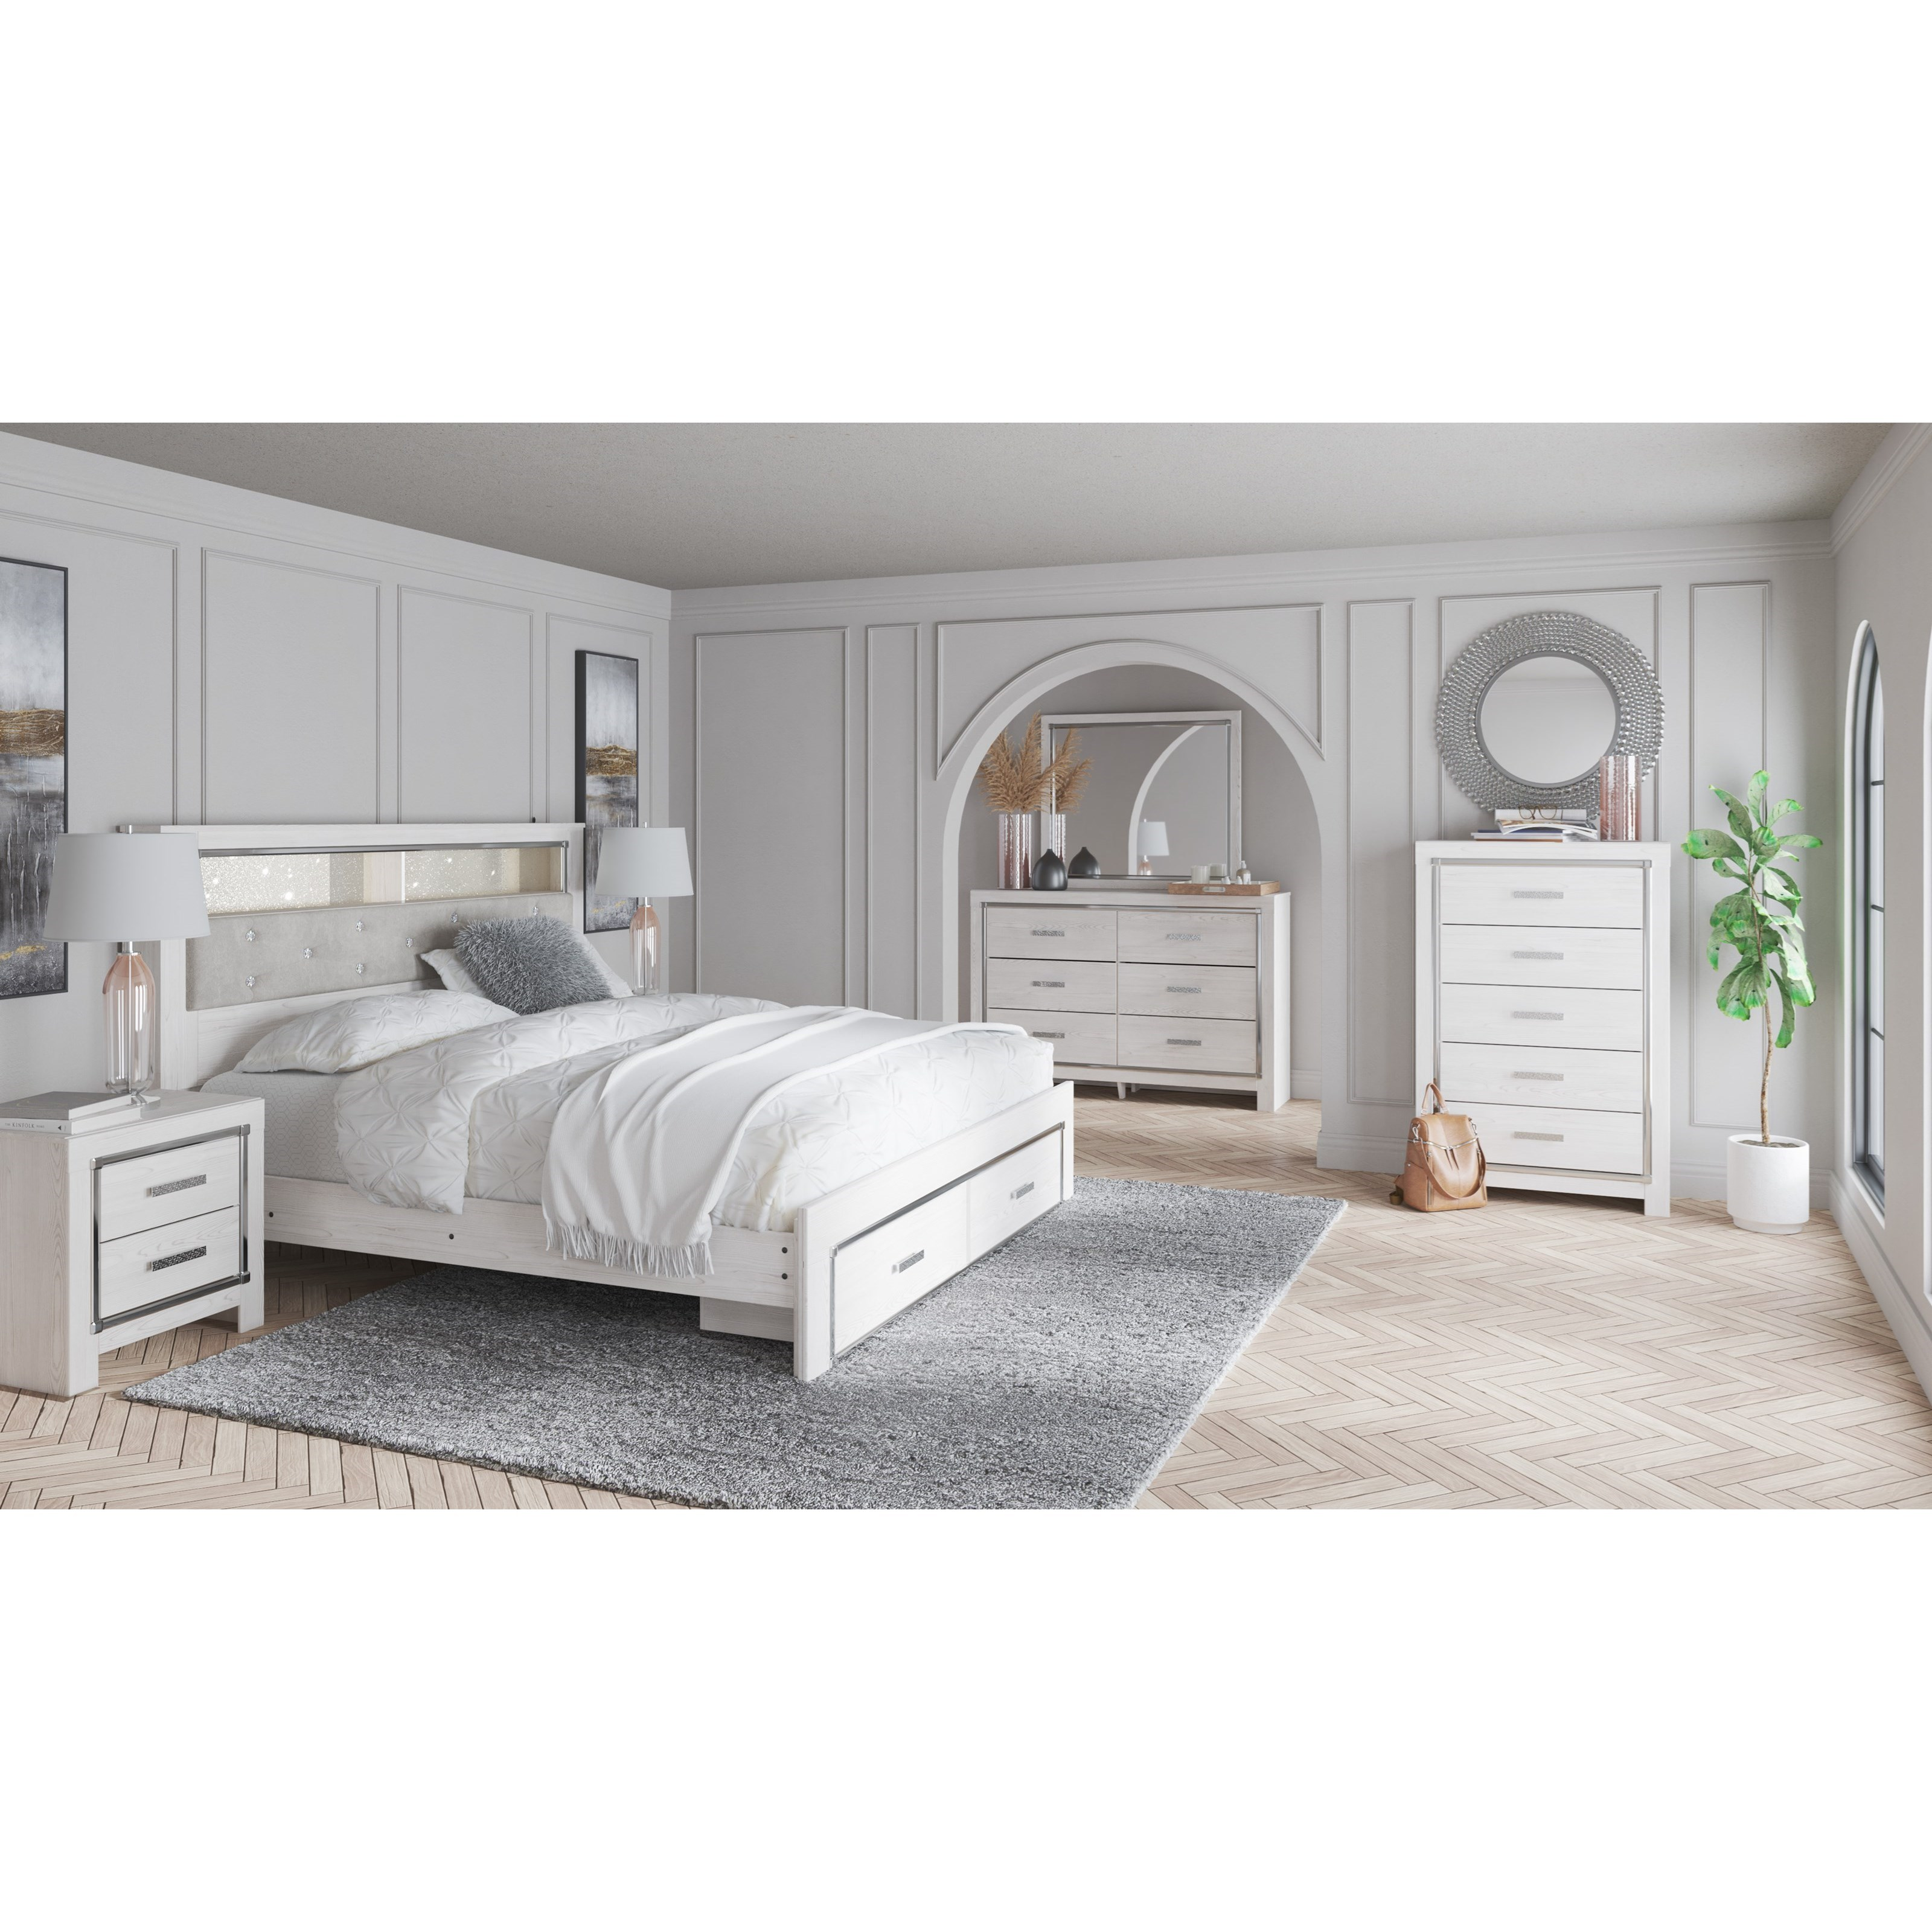 Altyra King Bedroom Group by StyleLine at EFO Furniture Outlet